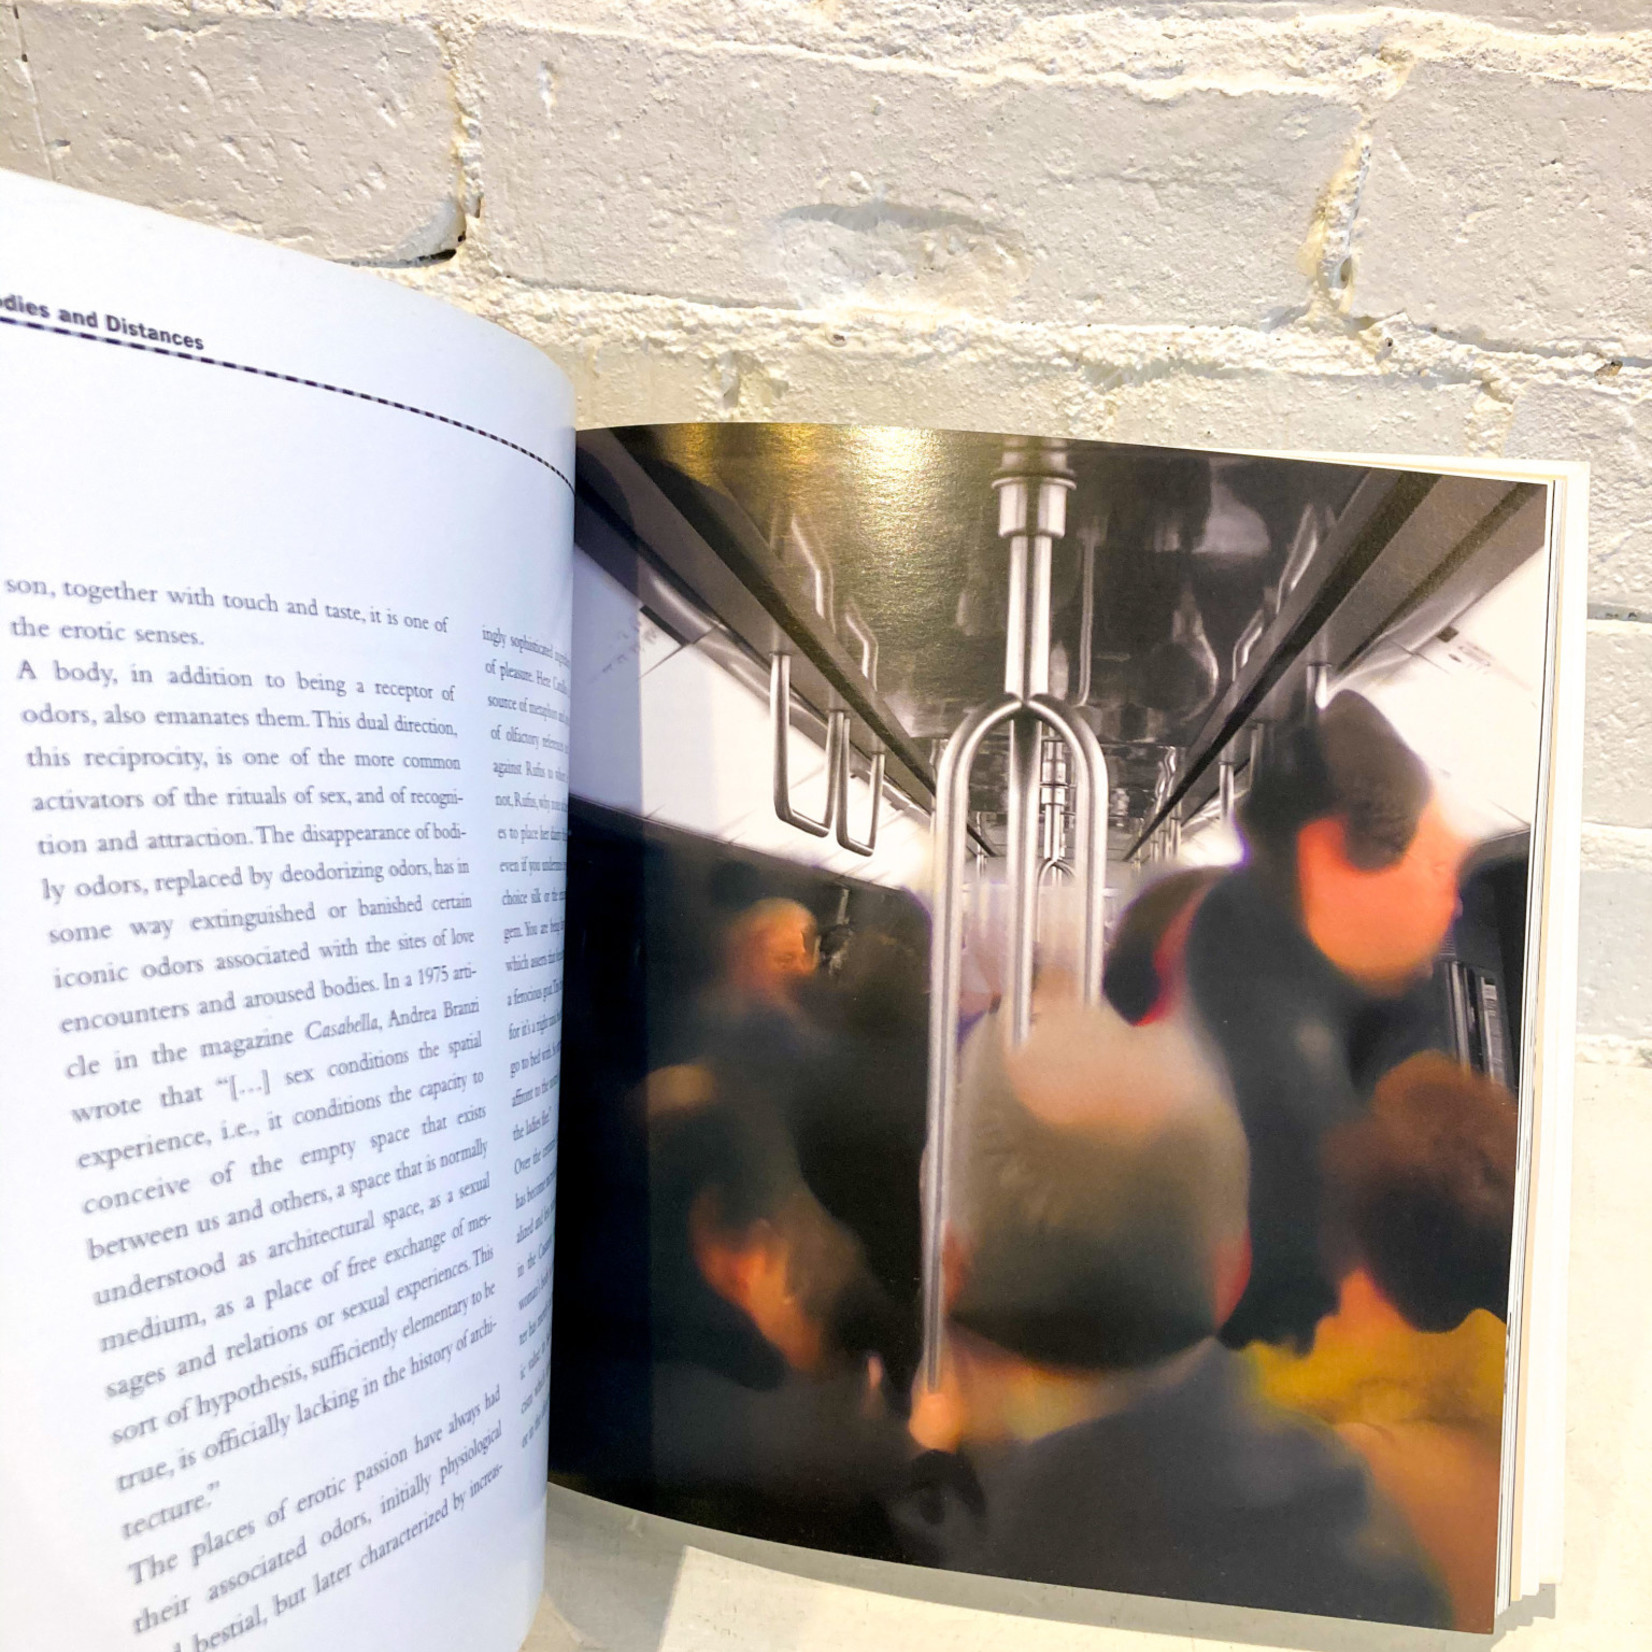 Invisible Architecture: Experiencing Places Through the Sense of Smell by Anna Barbara and Anthony Perliss